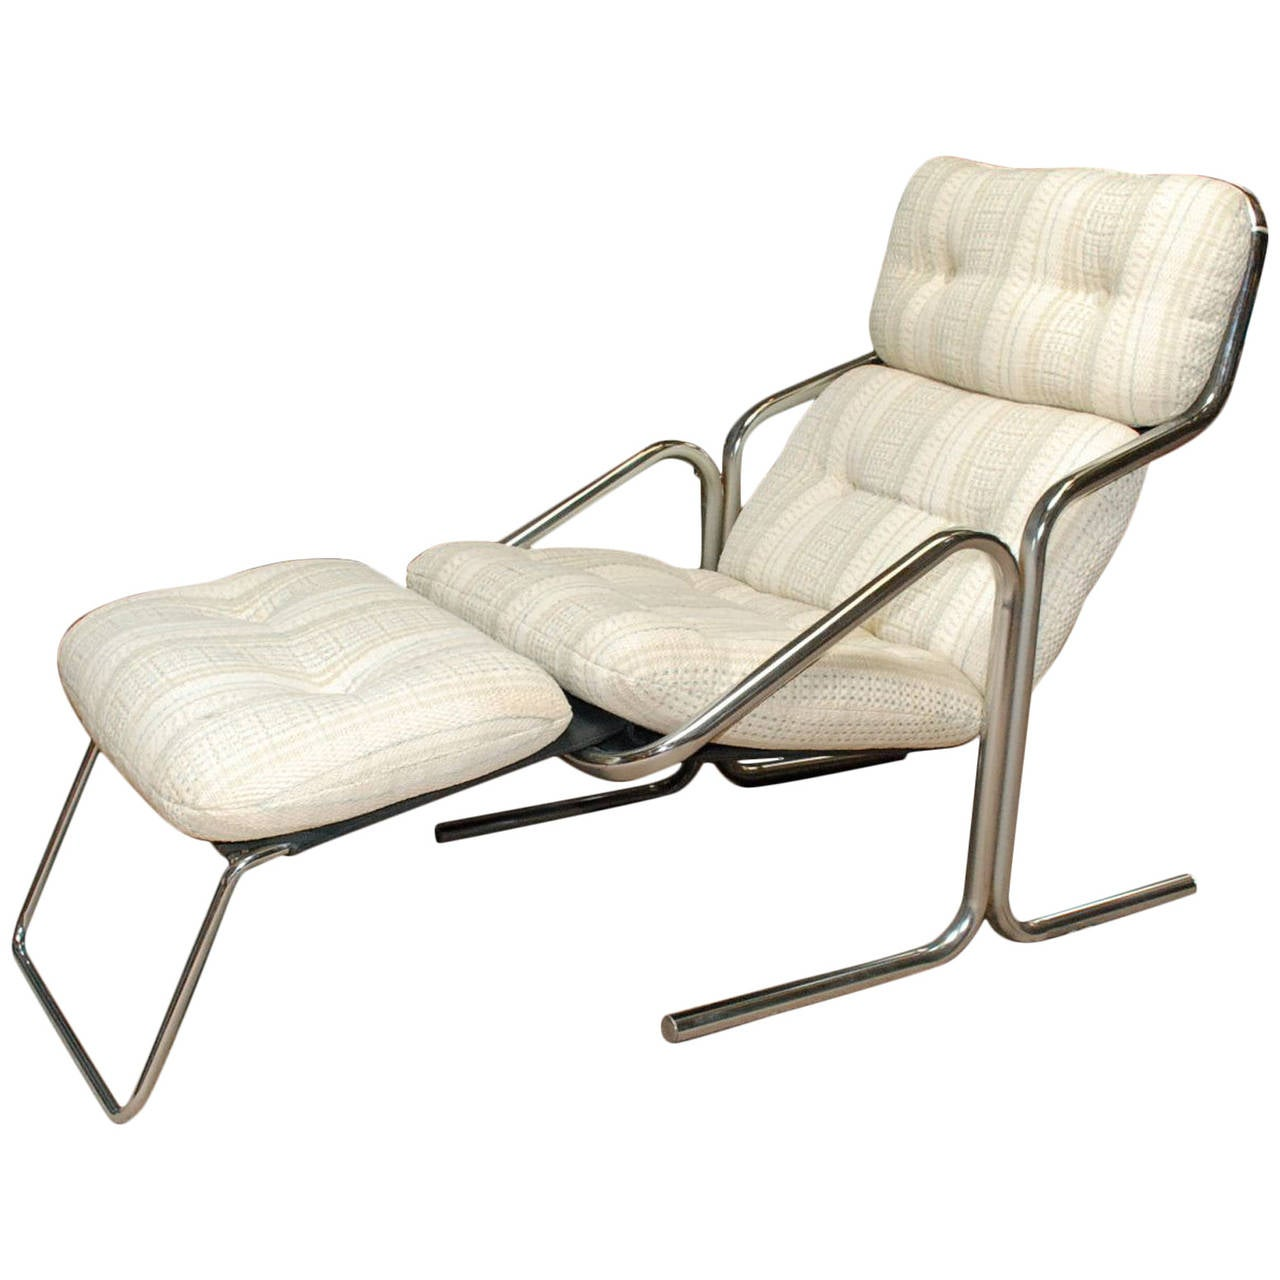 Chrome and Striped Chenille Lounger by Jerry Johnson